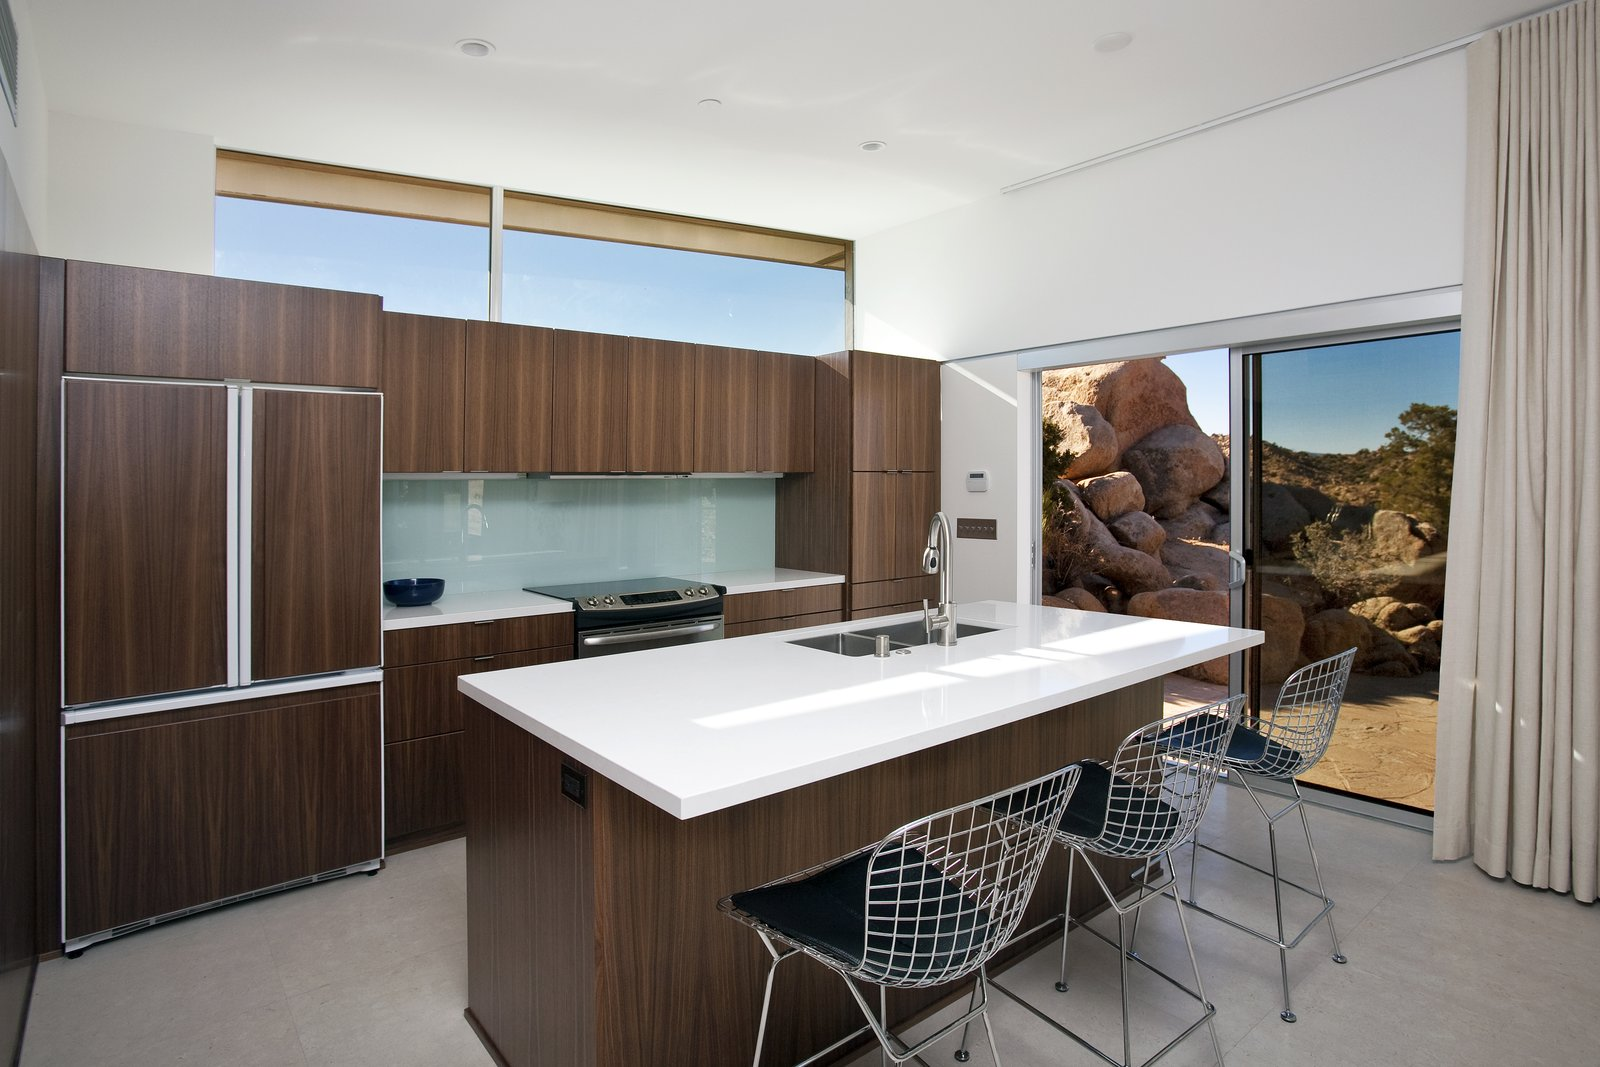 The kitchen boasts cabinets from a high-end Canadian vendor. Large cork tiles run throughout the home. Offered at $674K, This Hybrid Prefab Is in Tune With the Californian Desert - Photo 5 of 8